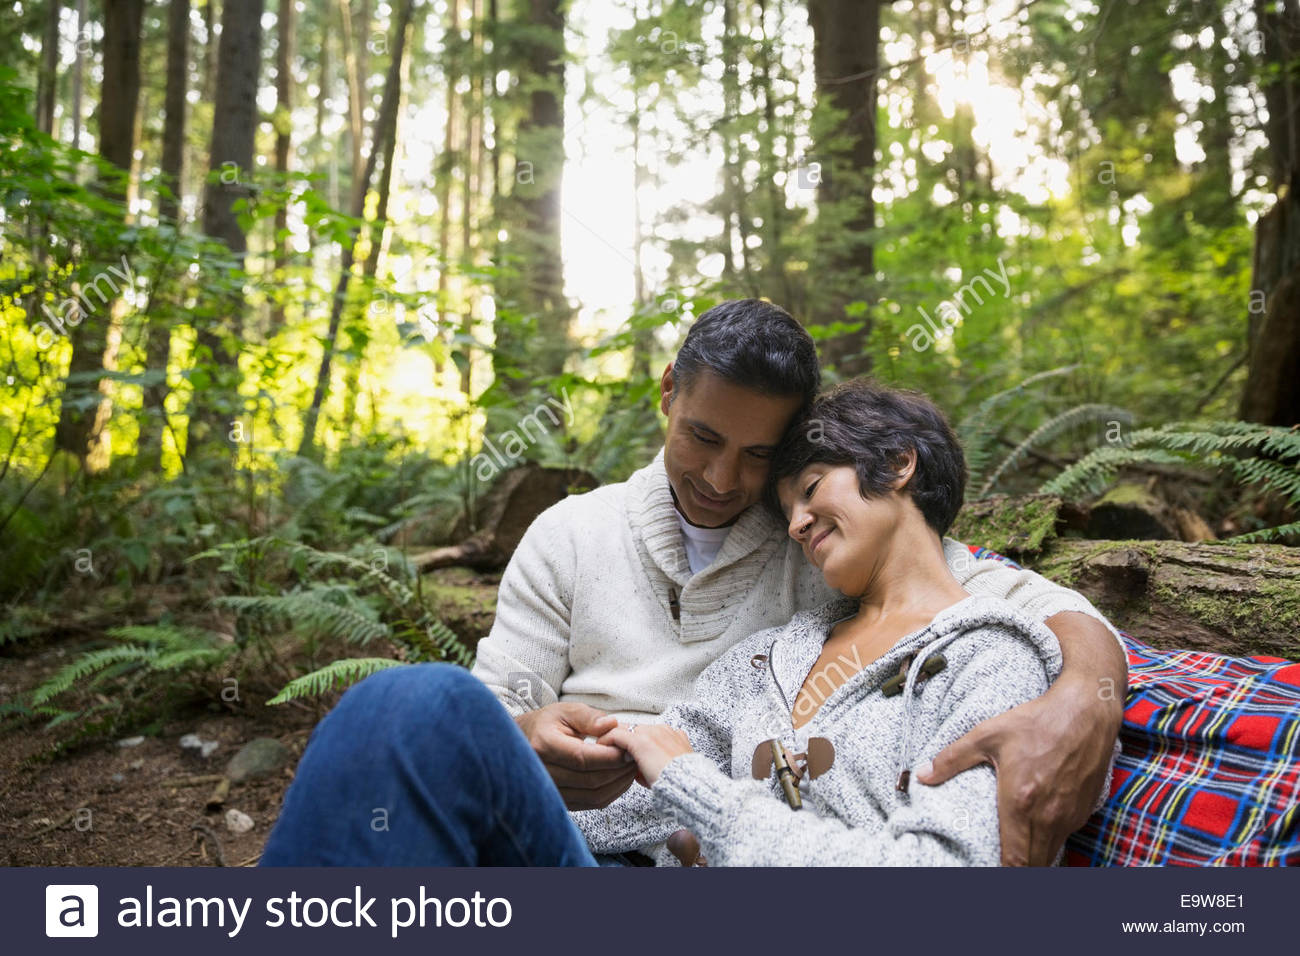 Romantic couple hugging in woods - Stock Image